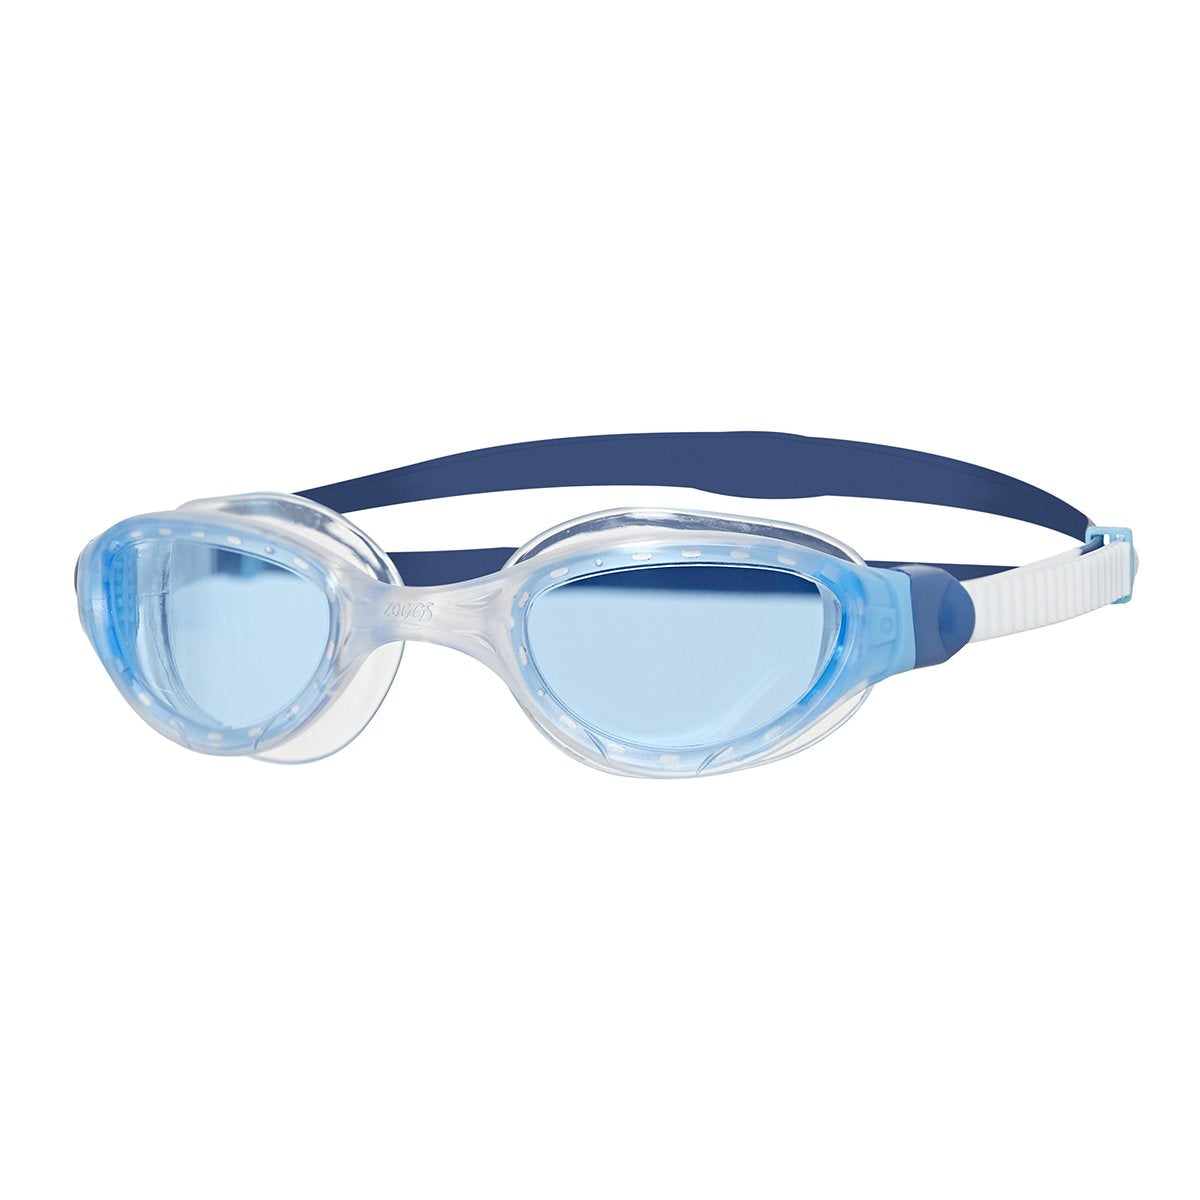 Phantom 2.0 Goggles